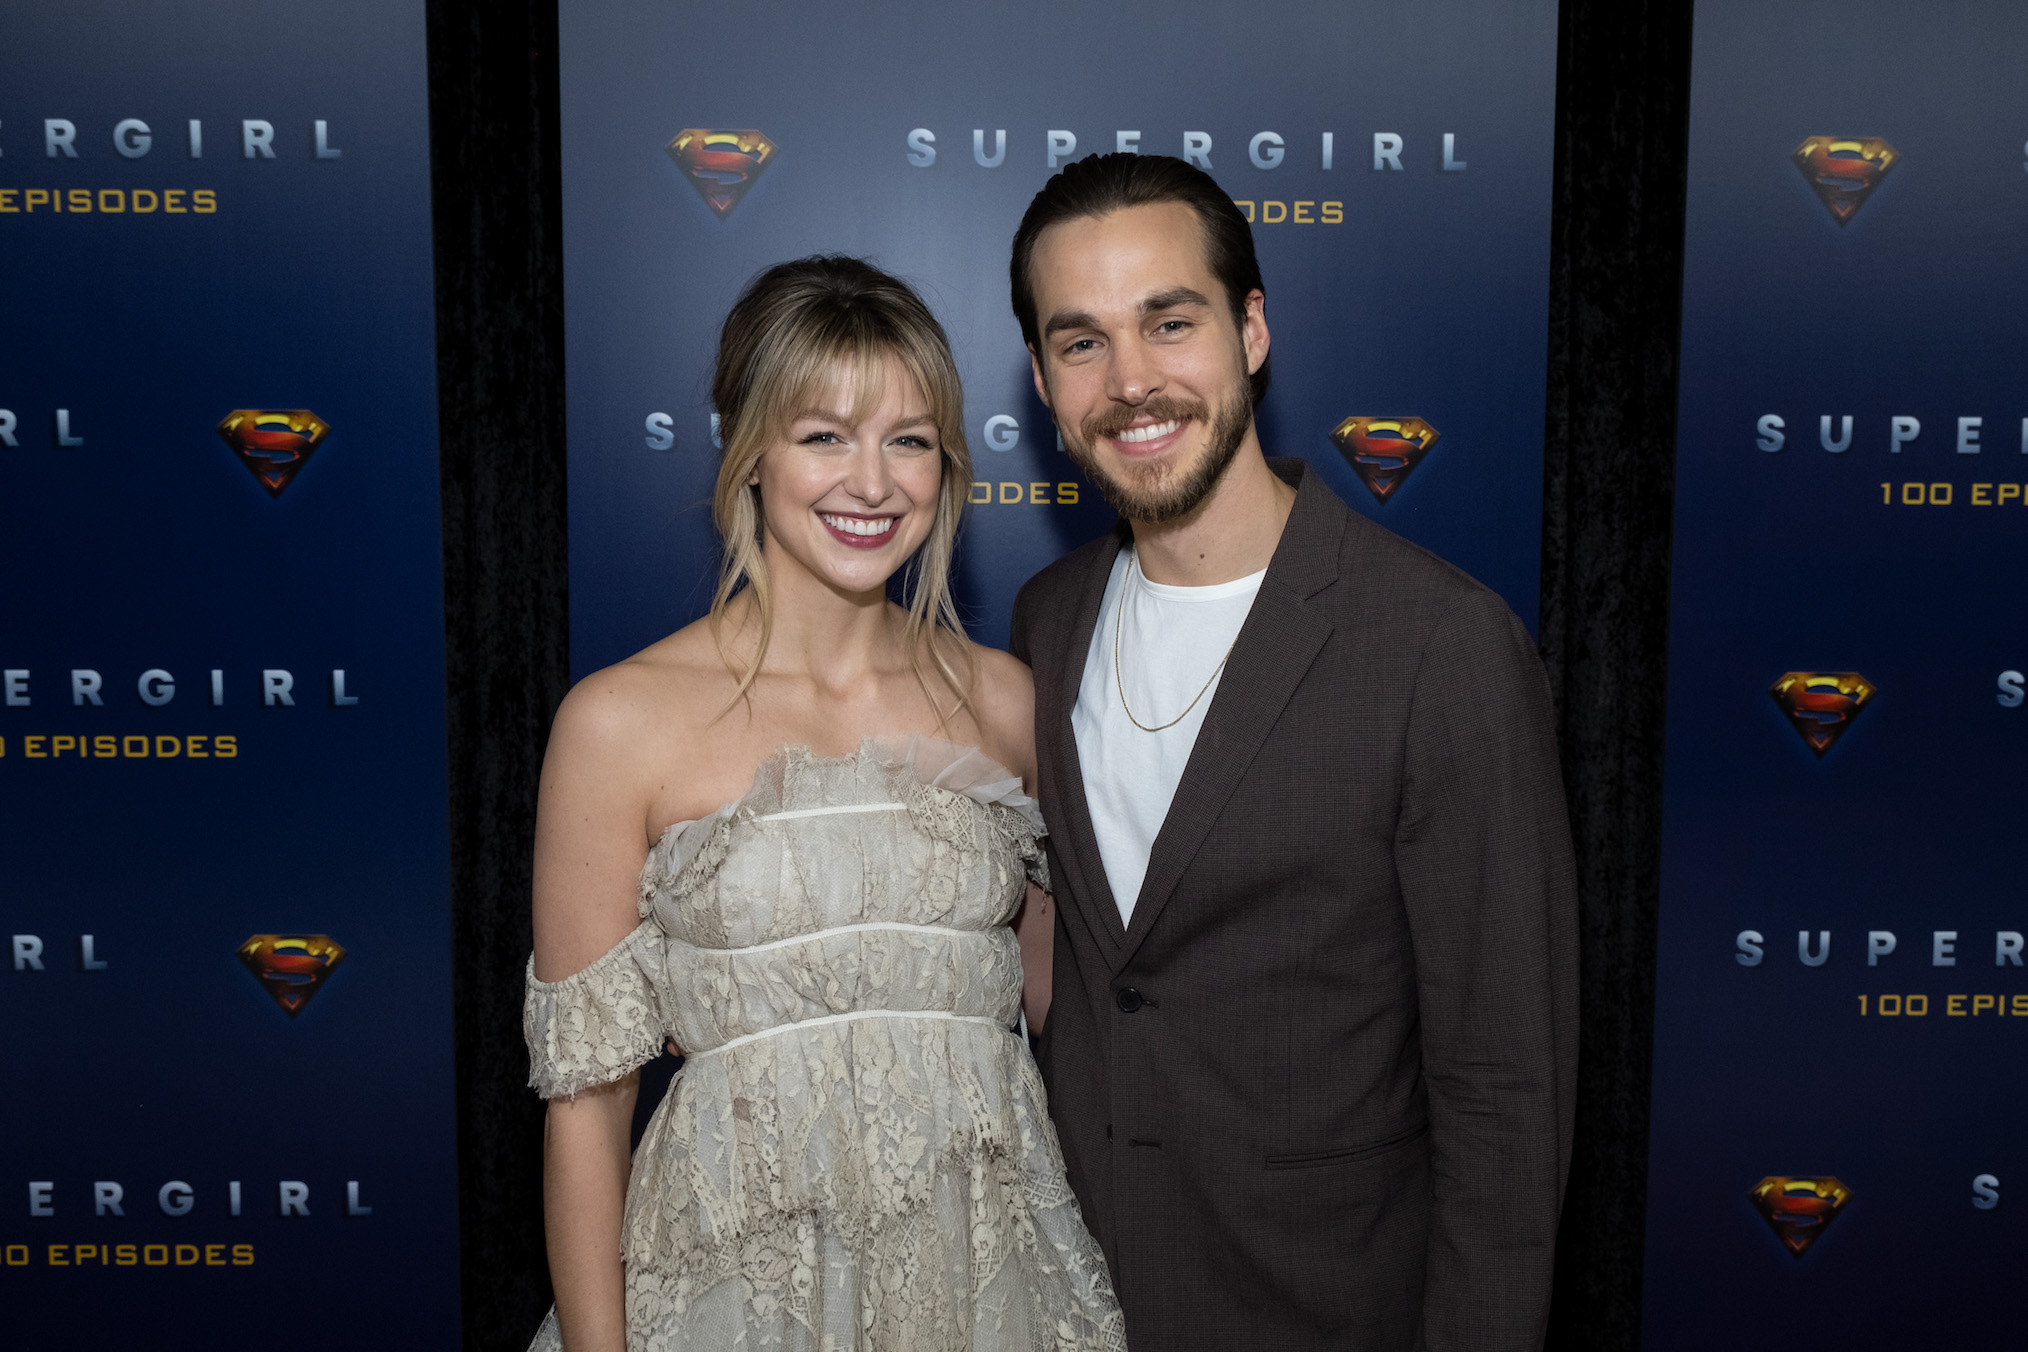 Supergirl's Melissa Benoist Will Soon Become A Mother